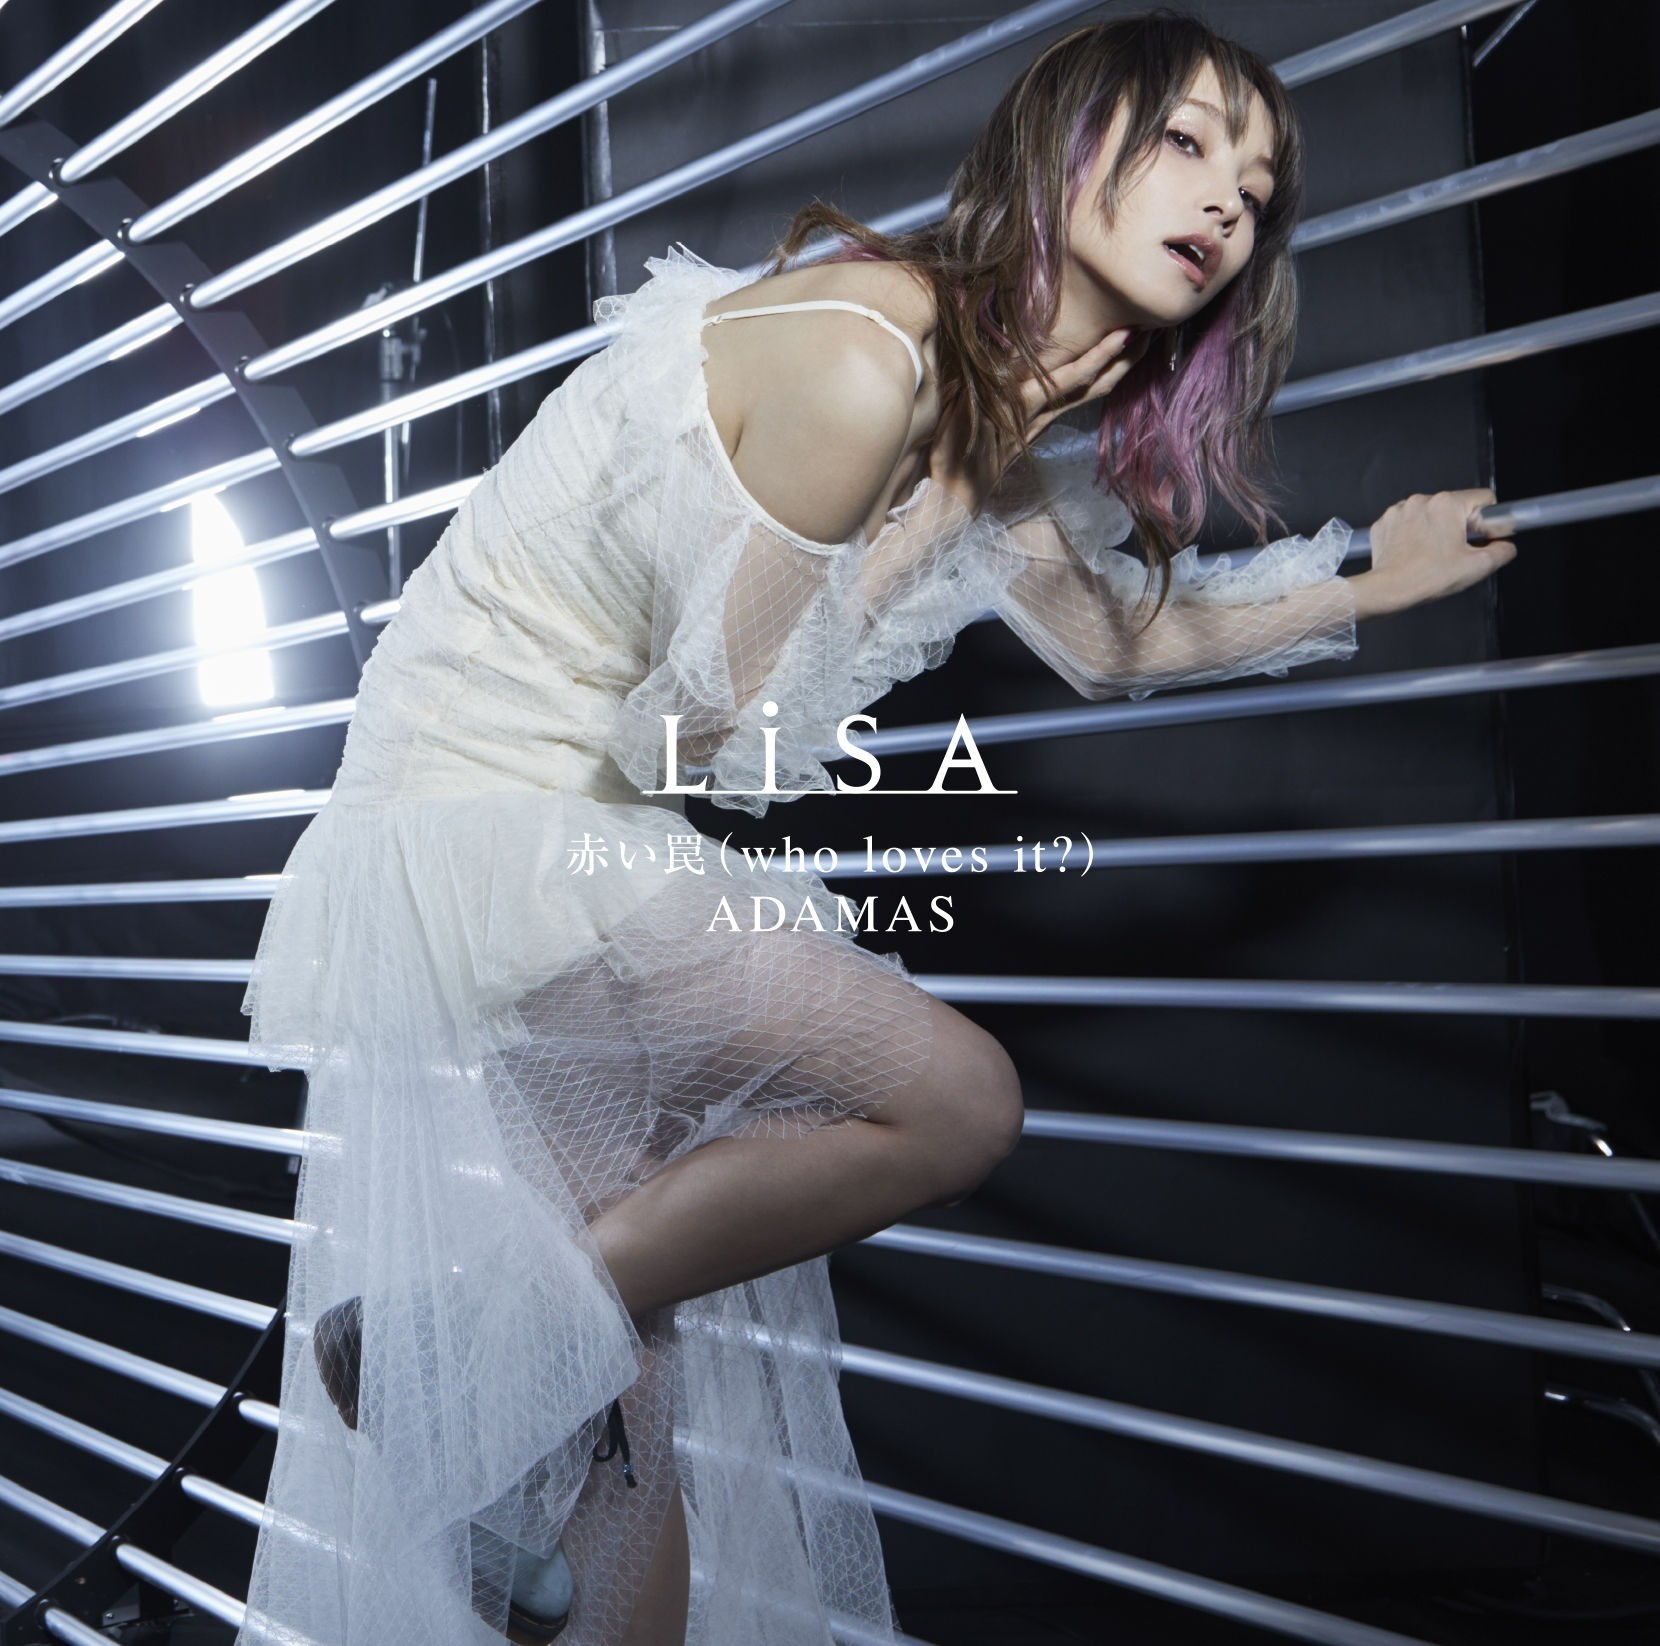 LiSA – 赤い罠 (who loves it?)/ADAMAS [Mora FLAC 24bit/48kHz]